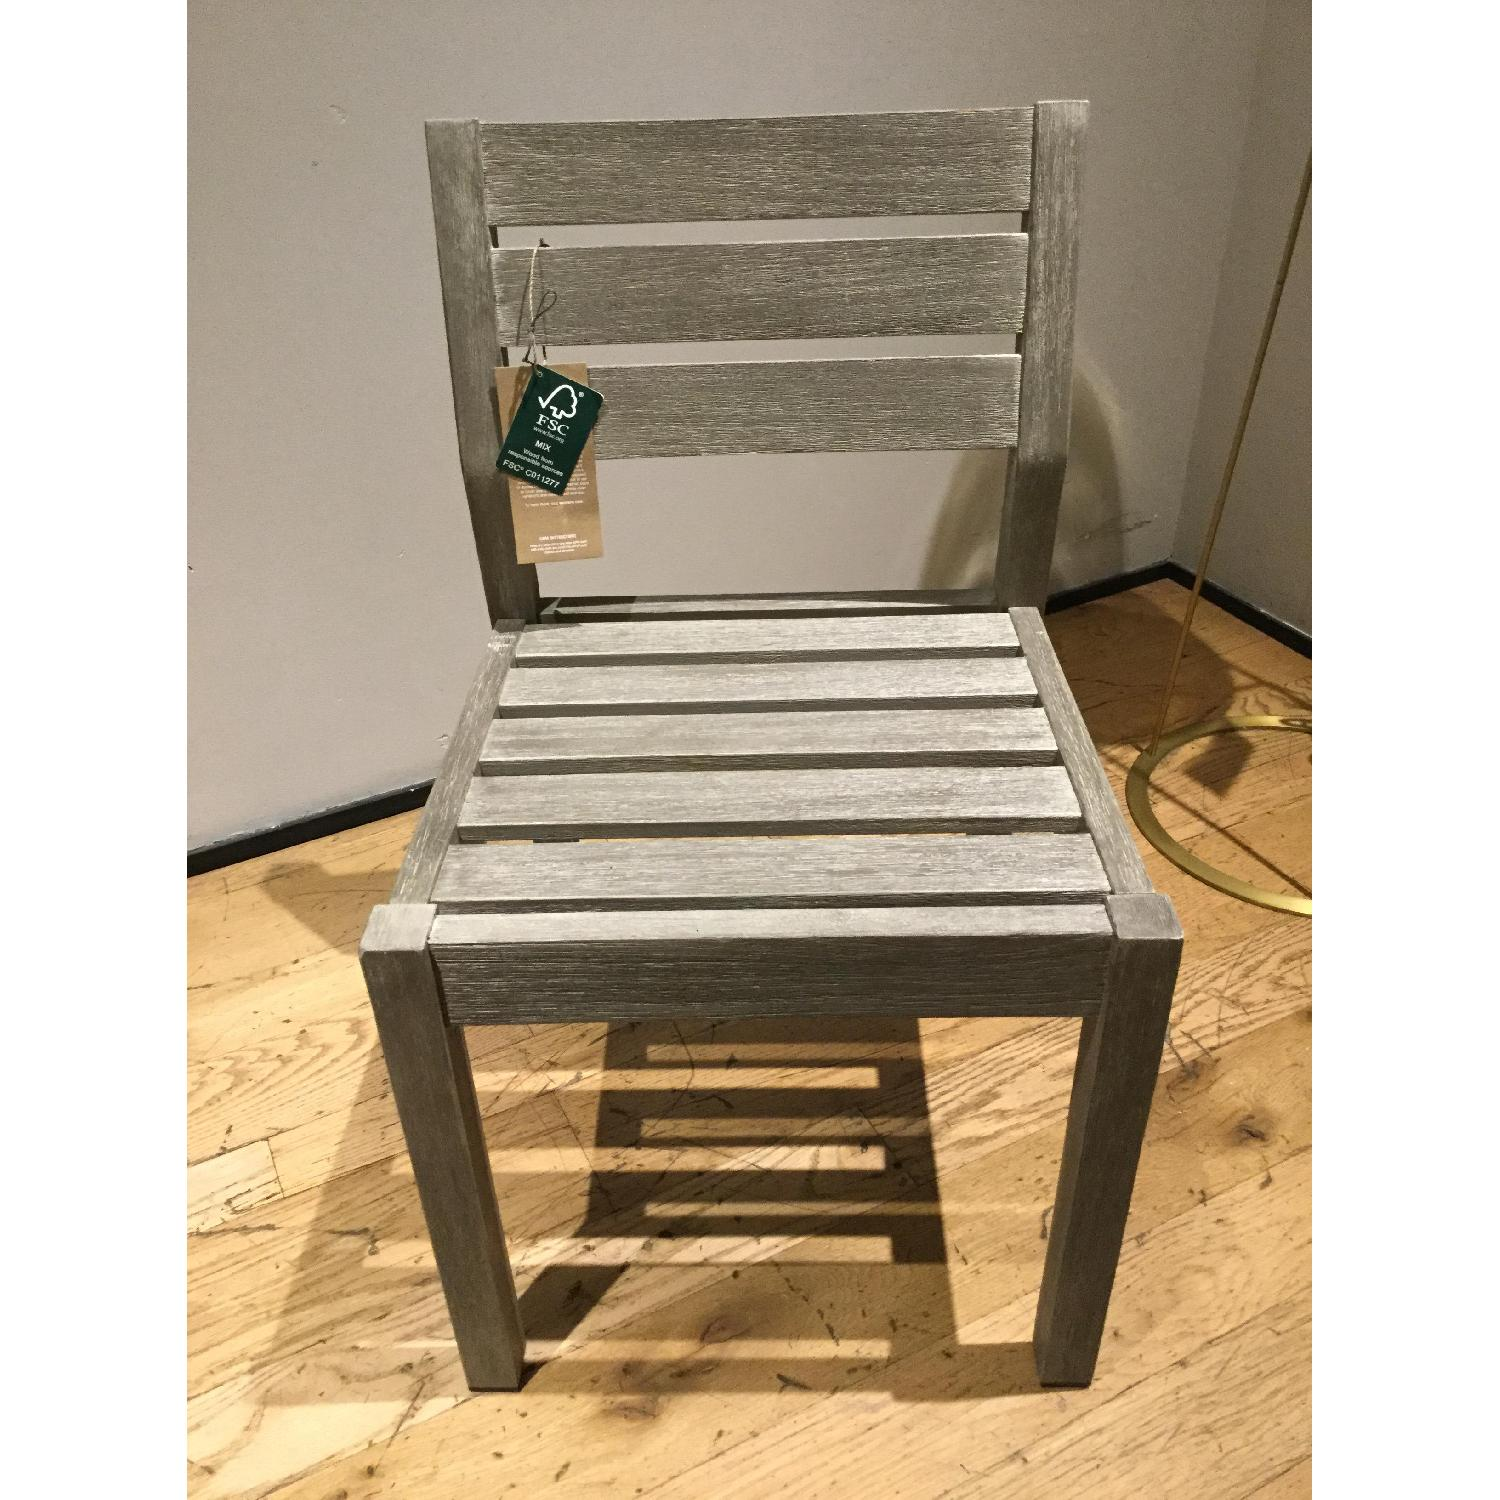 West Elm Portside Dining Chair in Weathered Gray - image-1